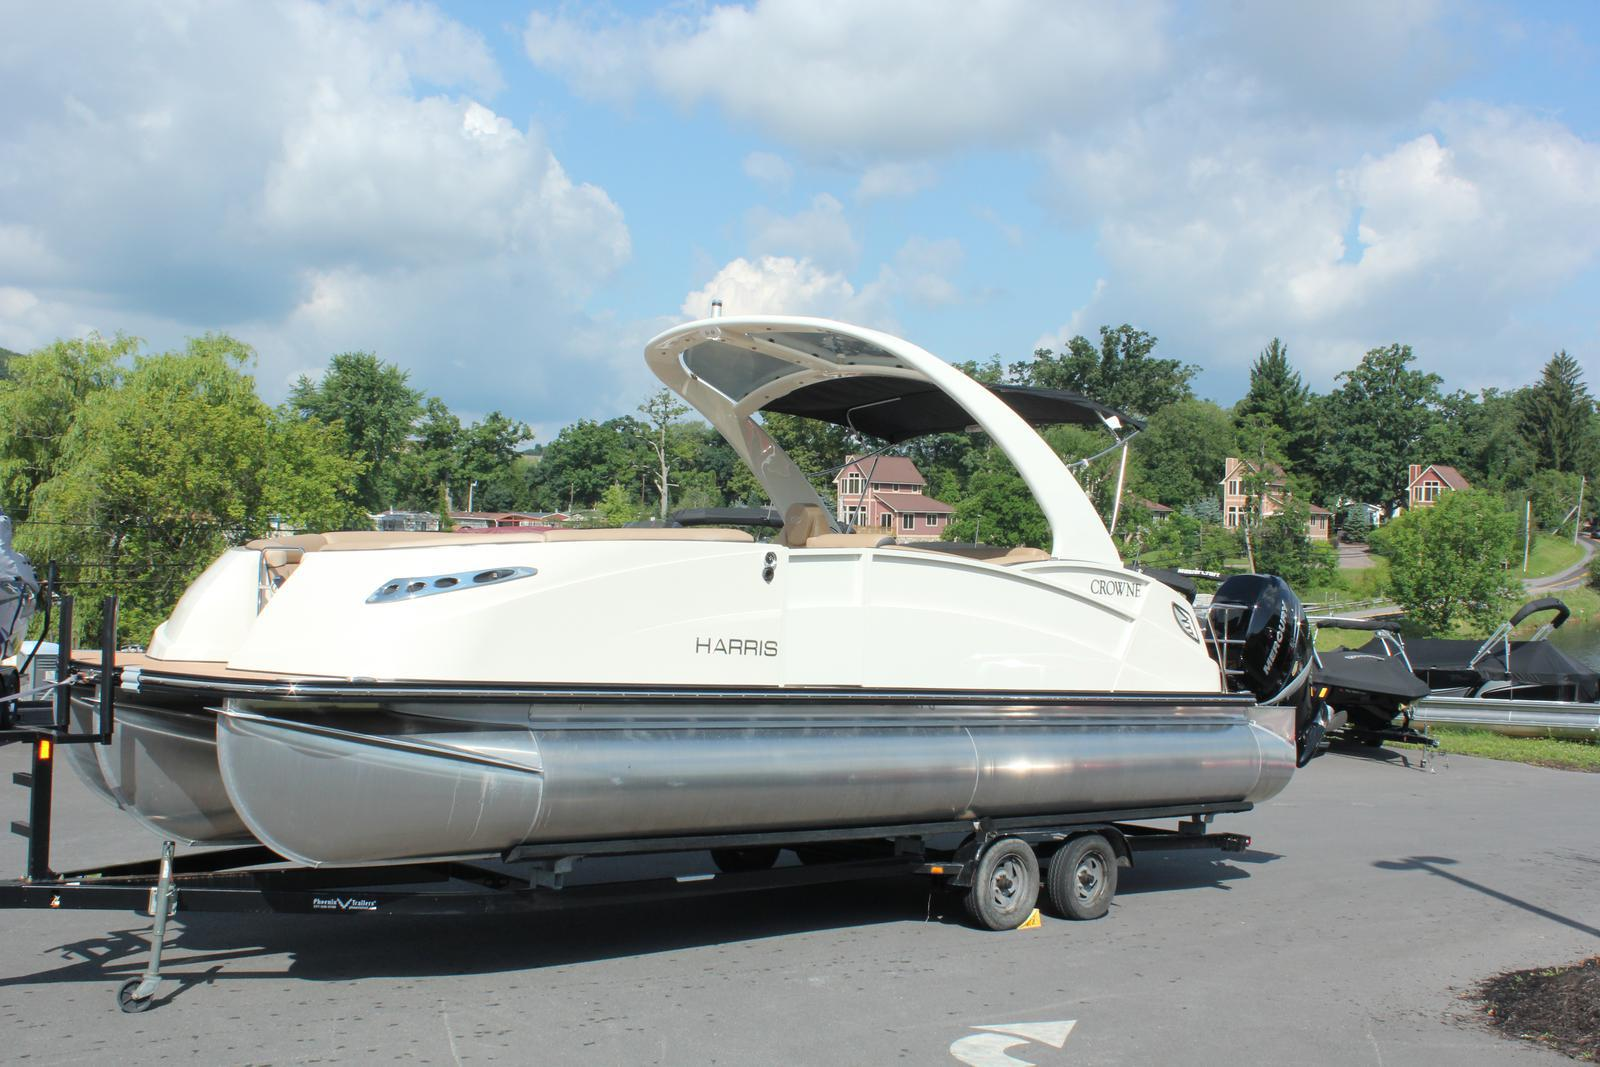 Harris CROWNE 25  SL TWIN ENGI 600HP Joyst